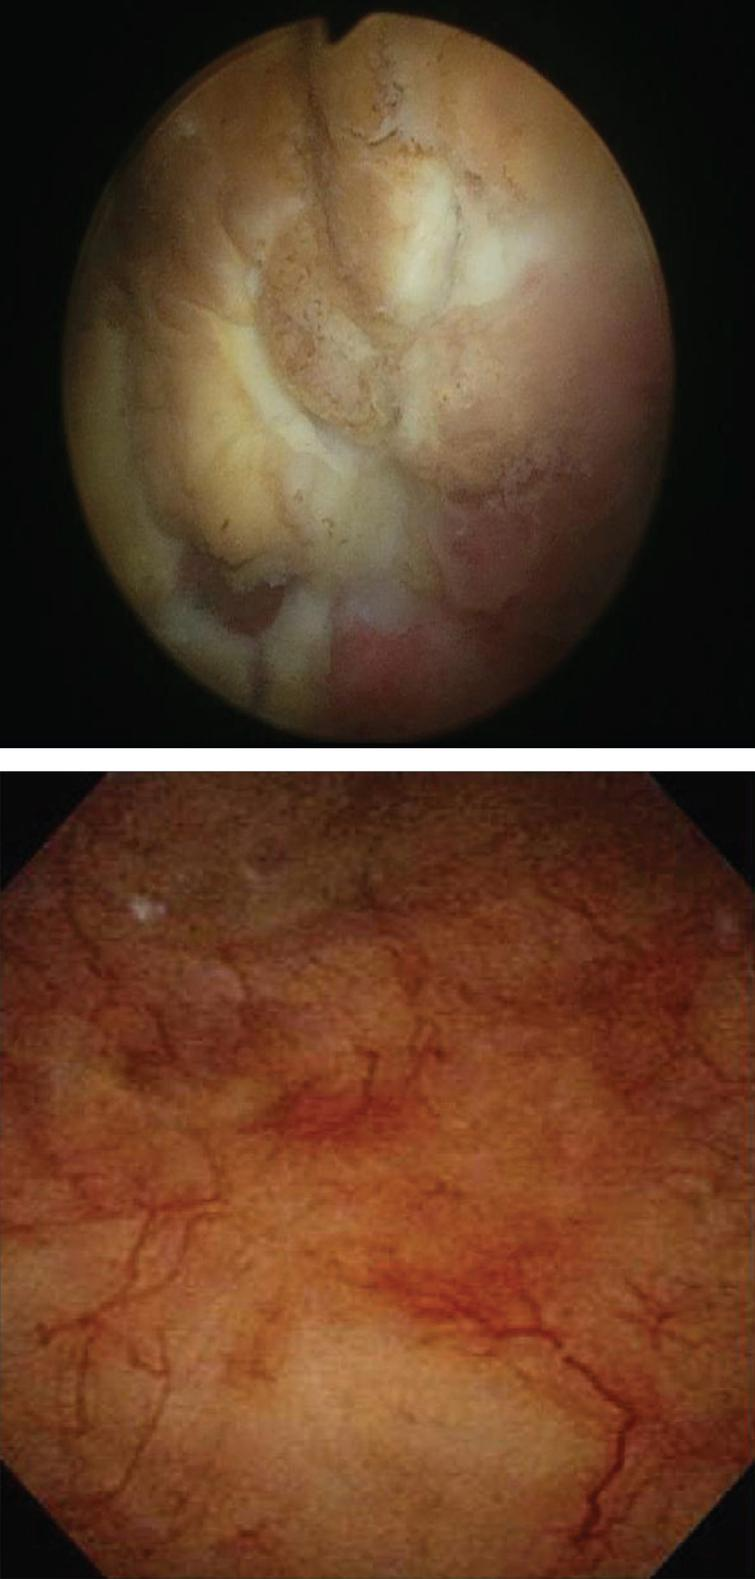 Cystoscopic images: Mitomycin-C induced cystitis pre- and post-treatment (top and bottom respectively) utilizing the algorithm.